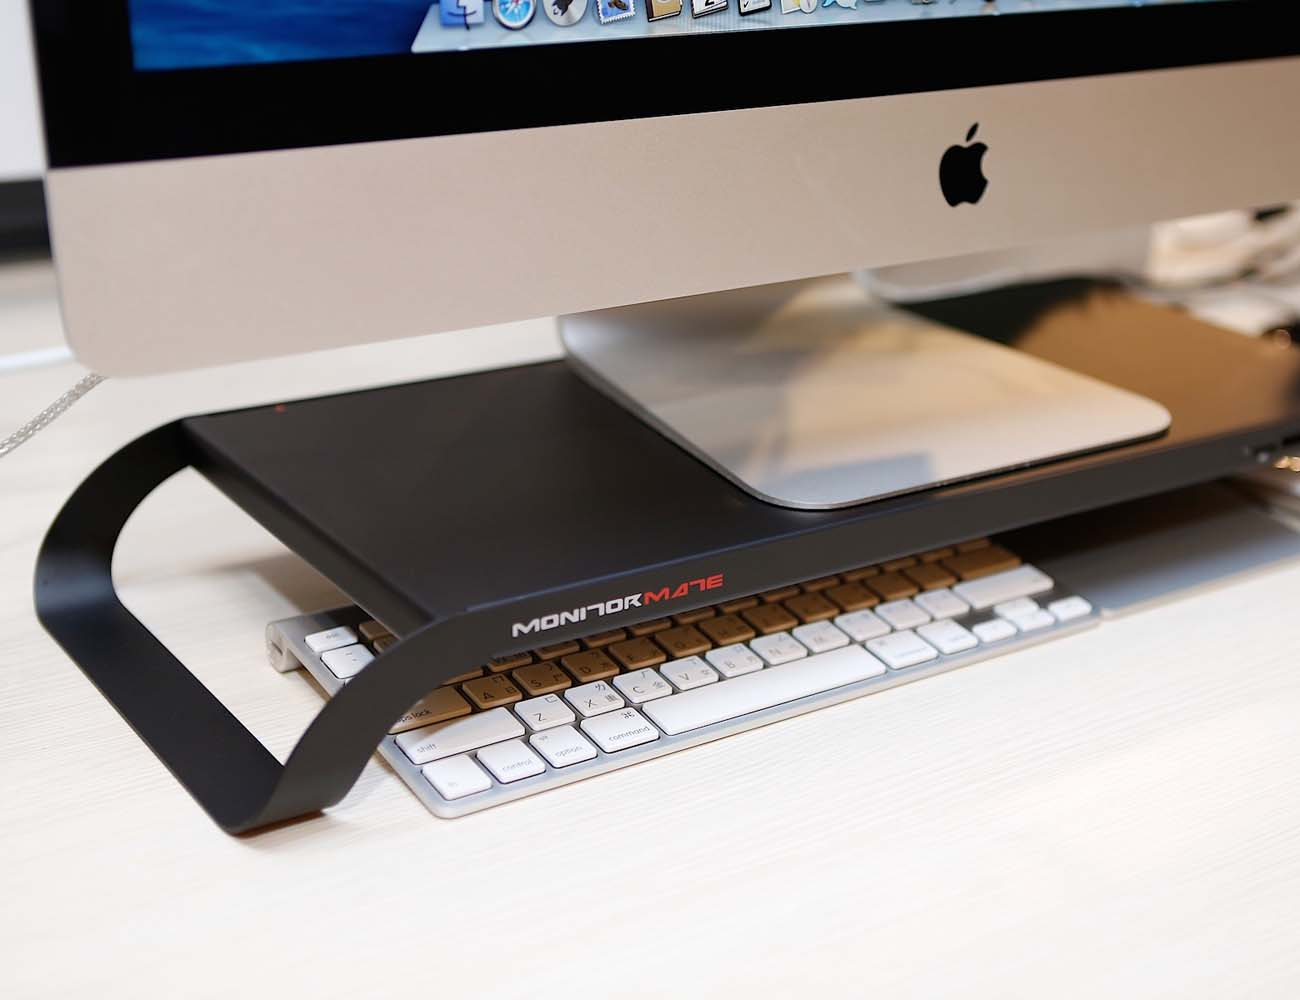 Ultra 3.0 Desktop Stand by Monitormate